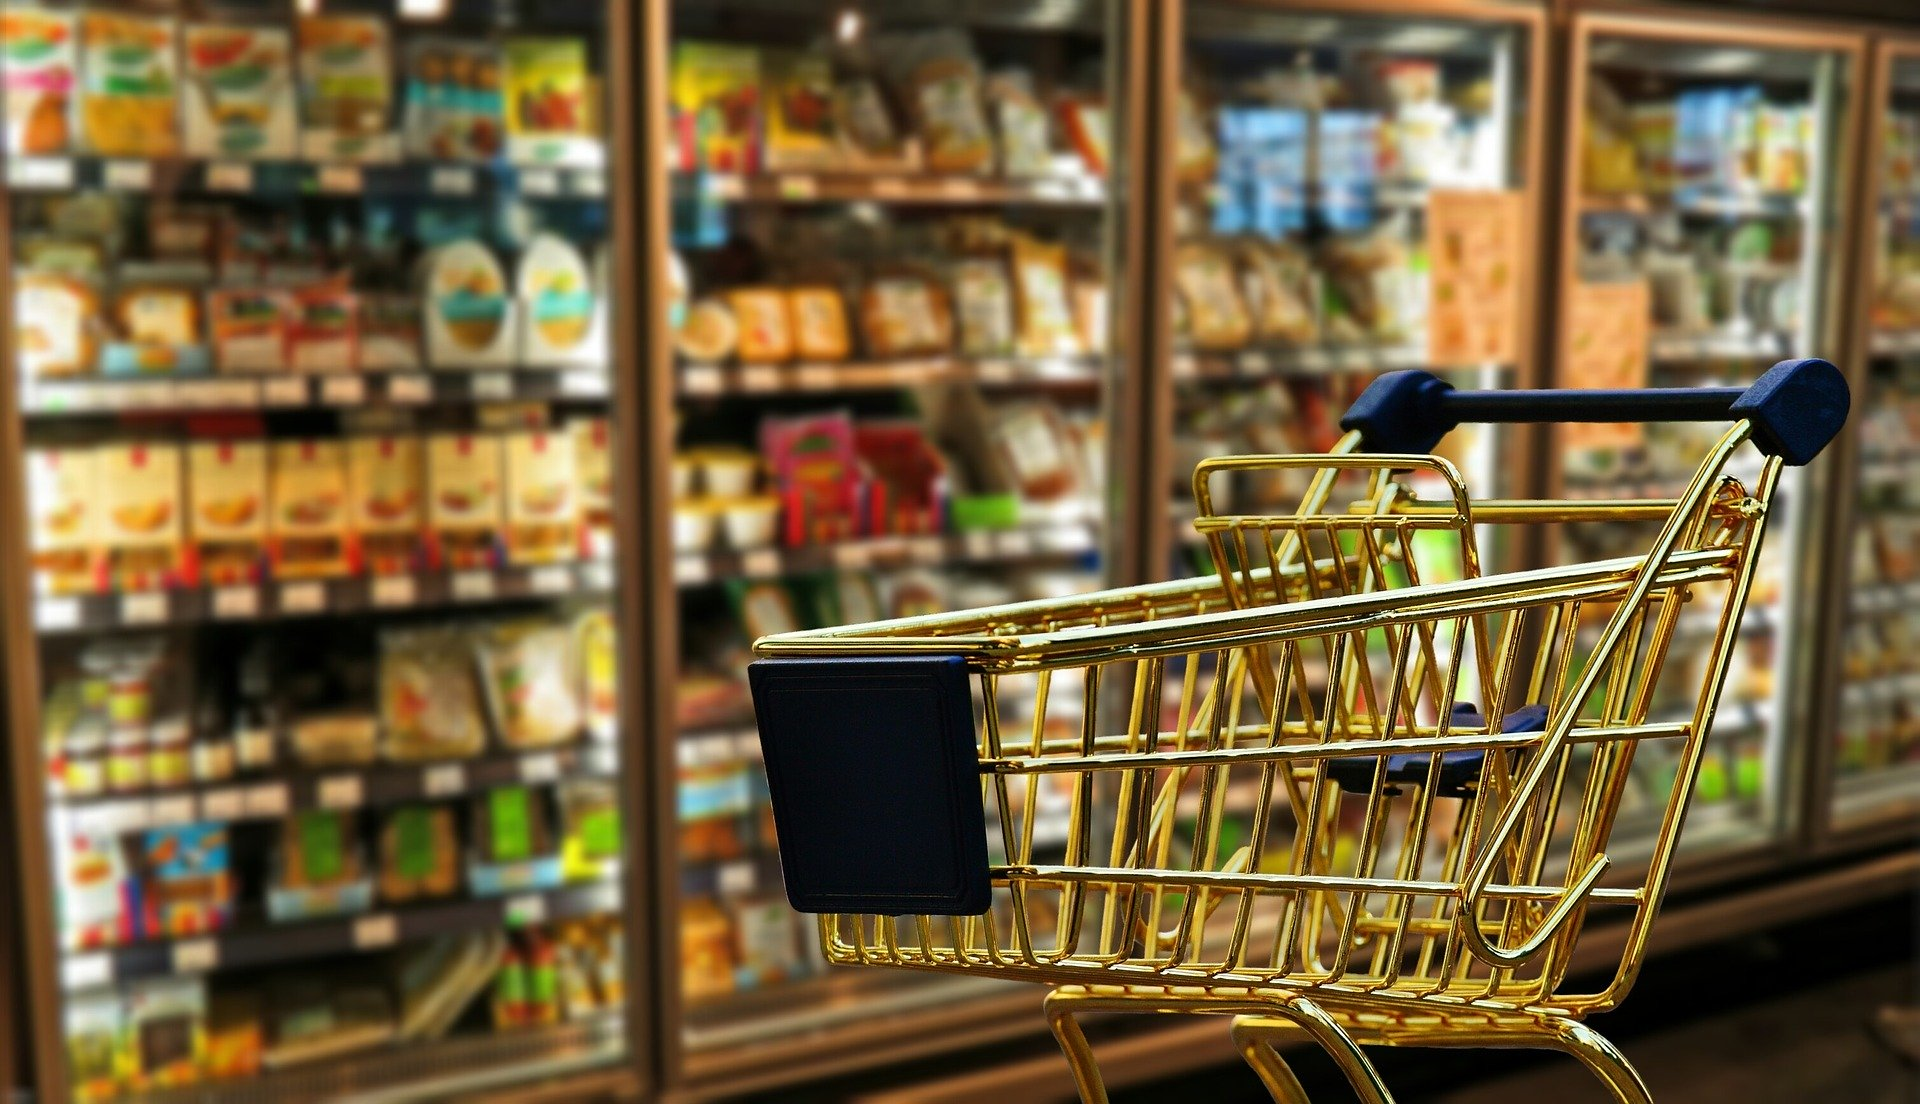 Photo of a supermarket refrigerator aisle with a shopping cart/trolley in the foreground